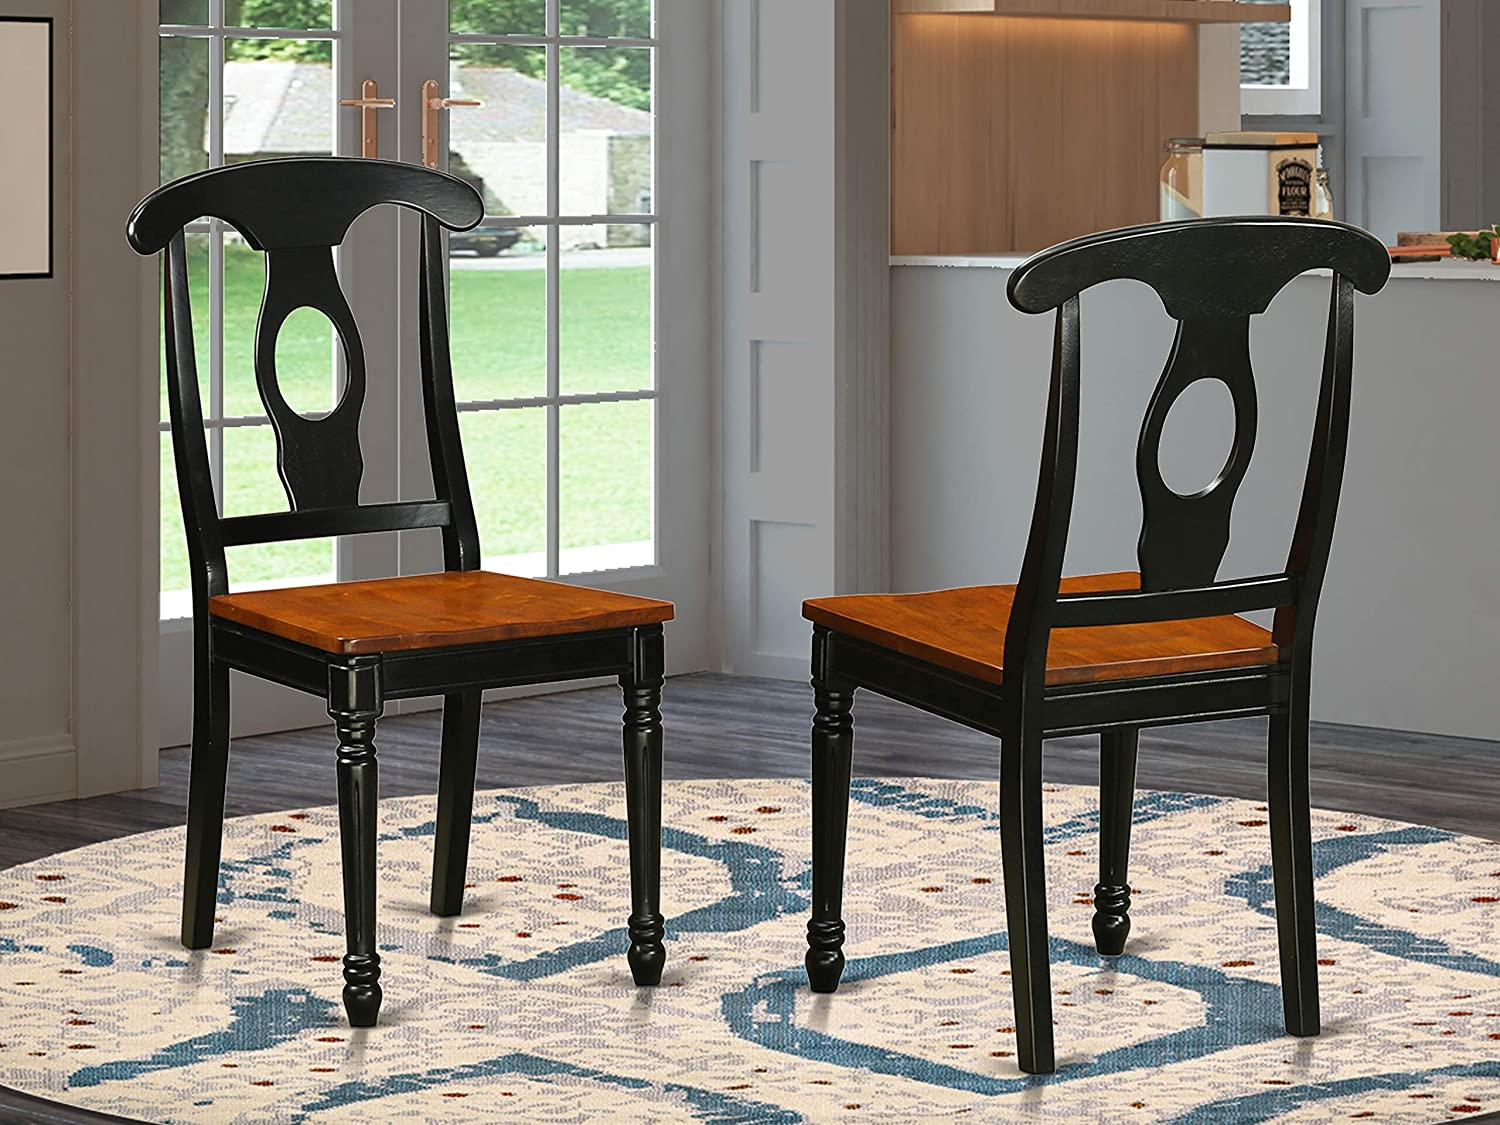 East West Furniture KEC-BLK-W Kitchen/Dining Chair Set with Wood Seat, Set of 2